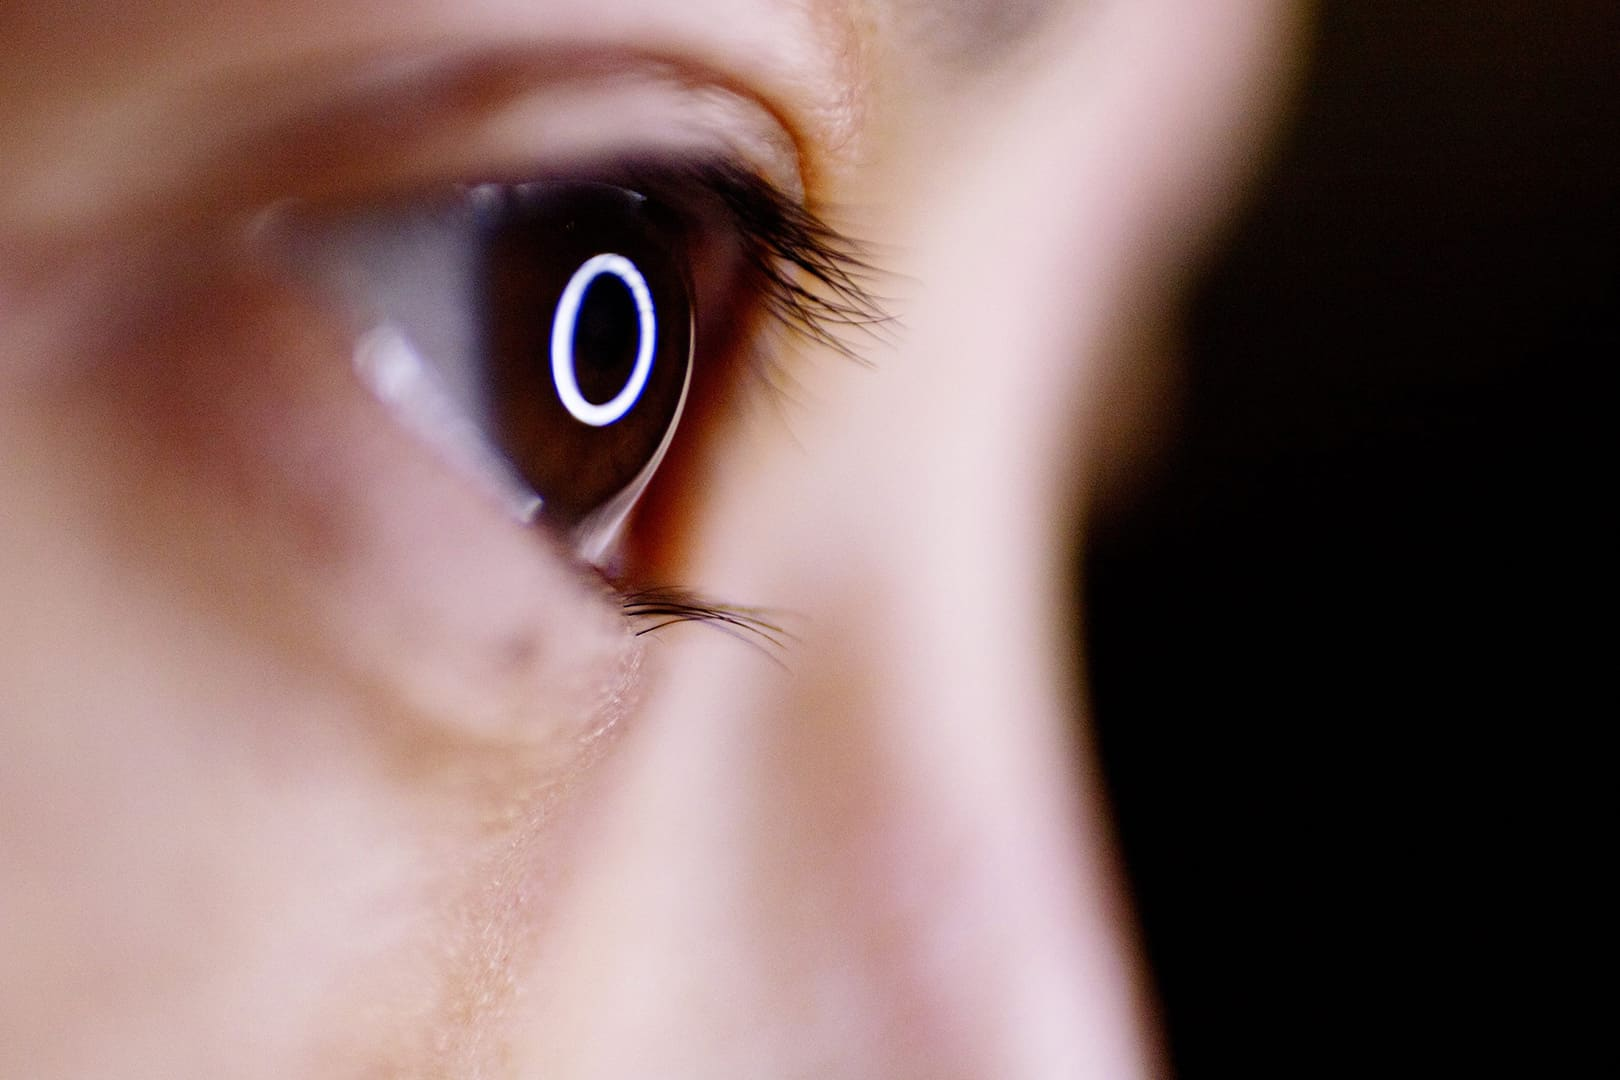 Close up of child eye with circle of light reflection and dark background stock photograph by Karl Tang EyeEm